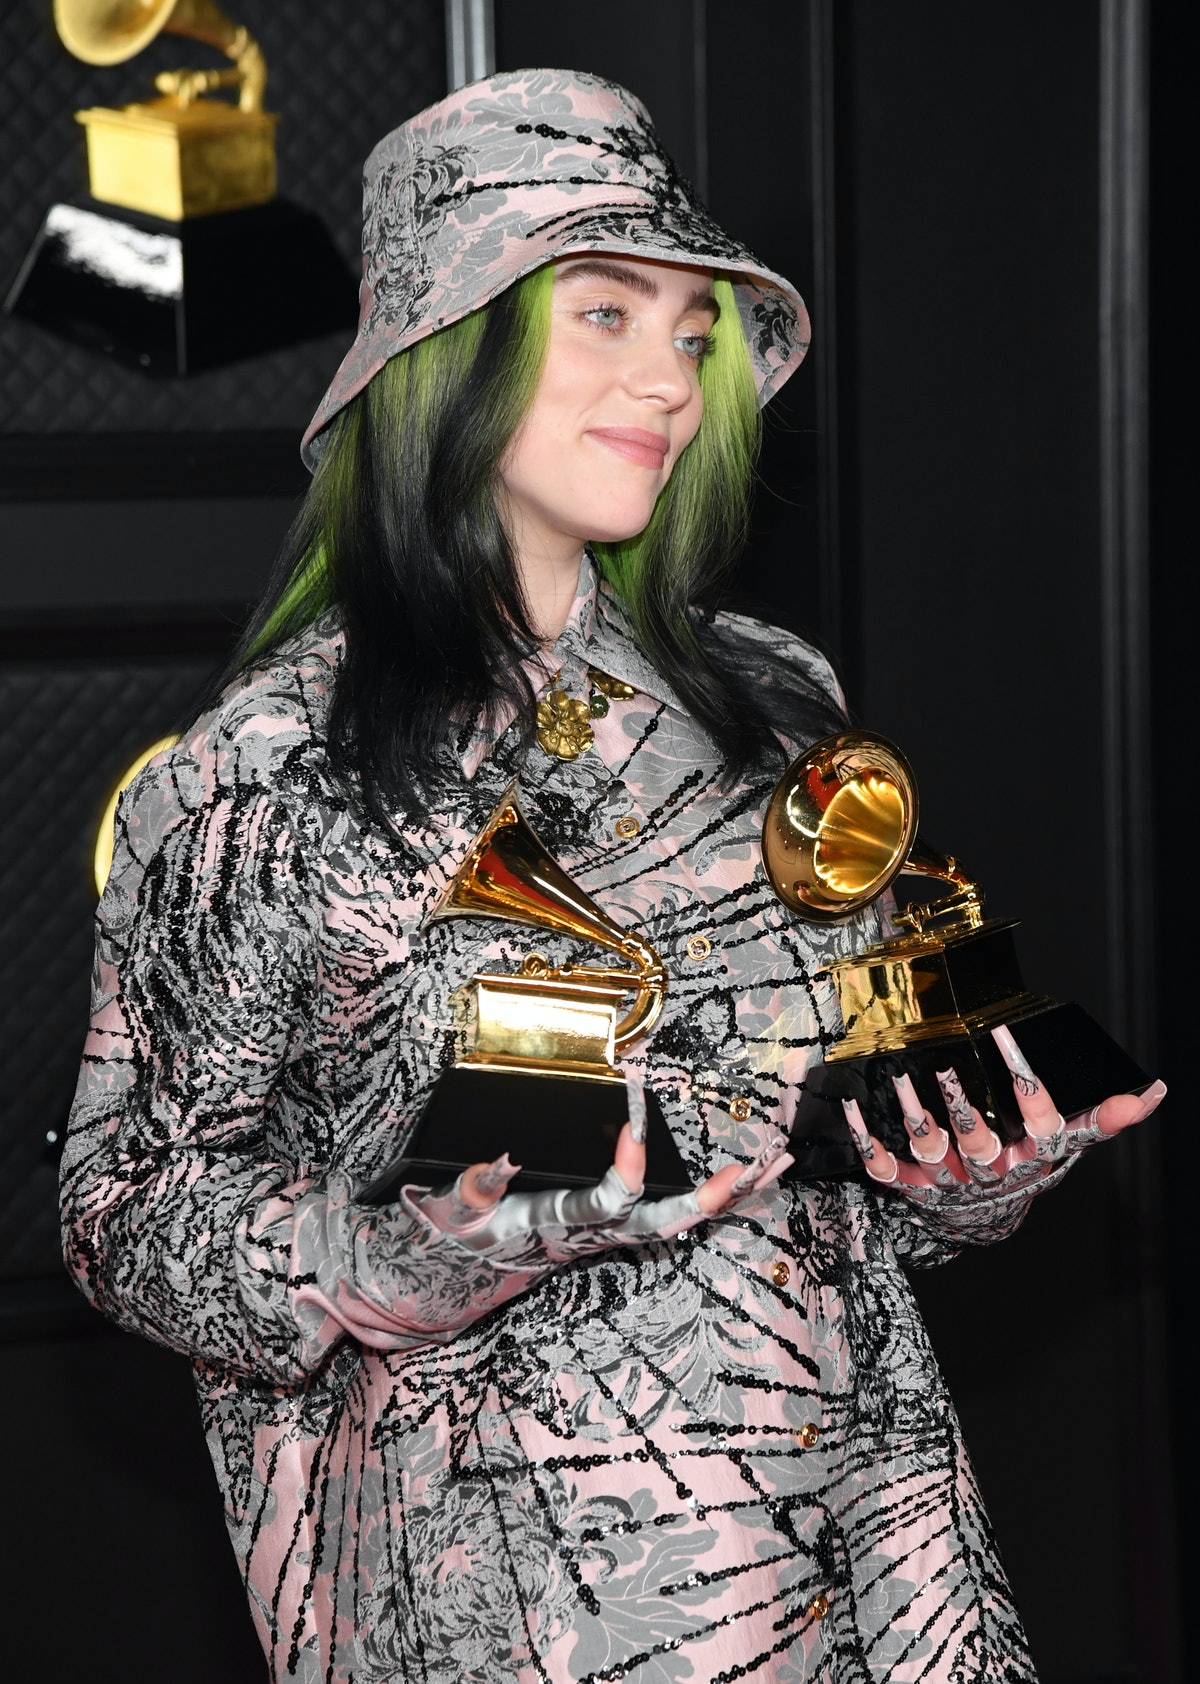 """LOS ANGELES, CALIFORNIA - MARCH 14: Billie Eilish, winner of Record of the Year for 'Everything I Wanted' and Best Song Written For Visual Media for """"No Time To Die"""", poses in the media room during the 63rd Annual GRAMMY Awards at Los Angeles Convention Center on March 14, 2021 in Los Angeles, California. (Photo by Kevin Mazur/Getty Images for The Recording Academy )"""